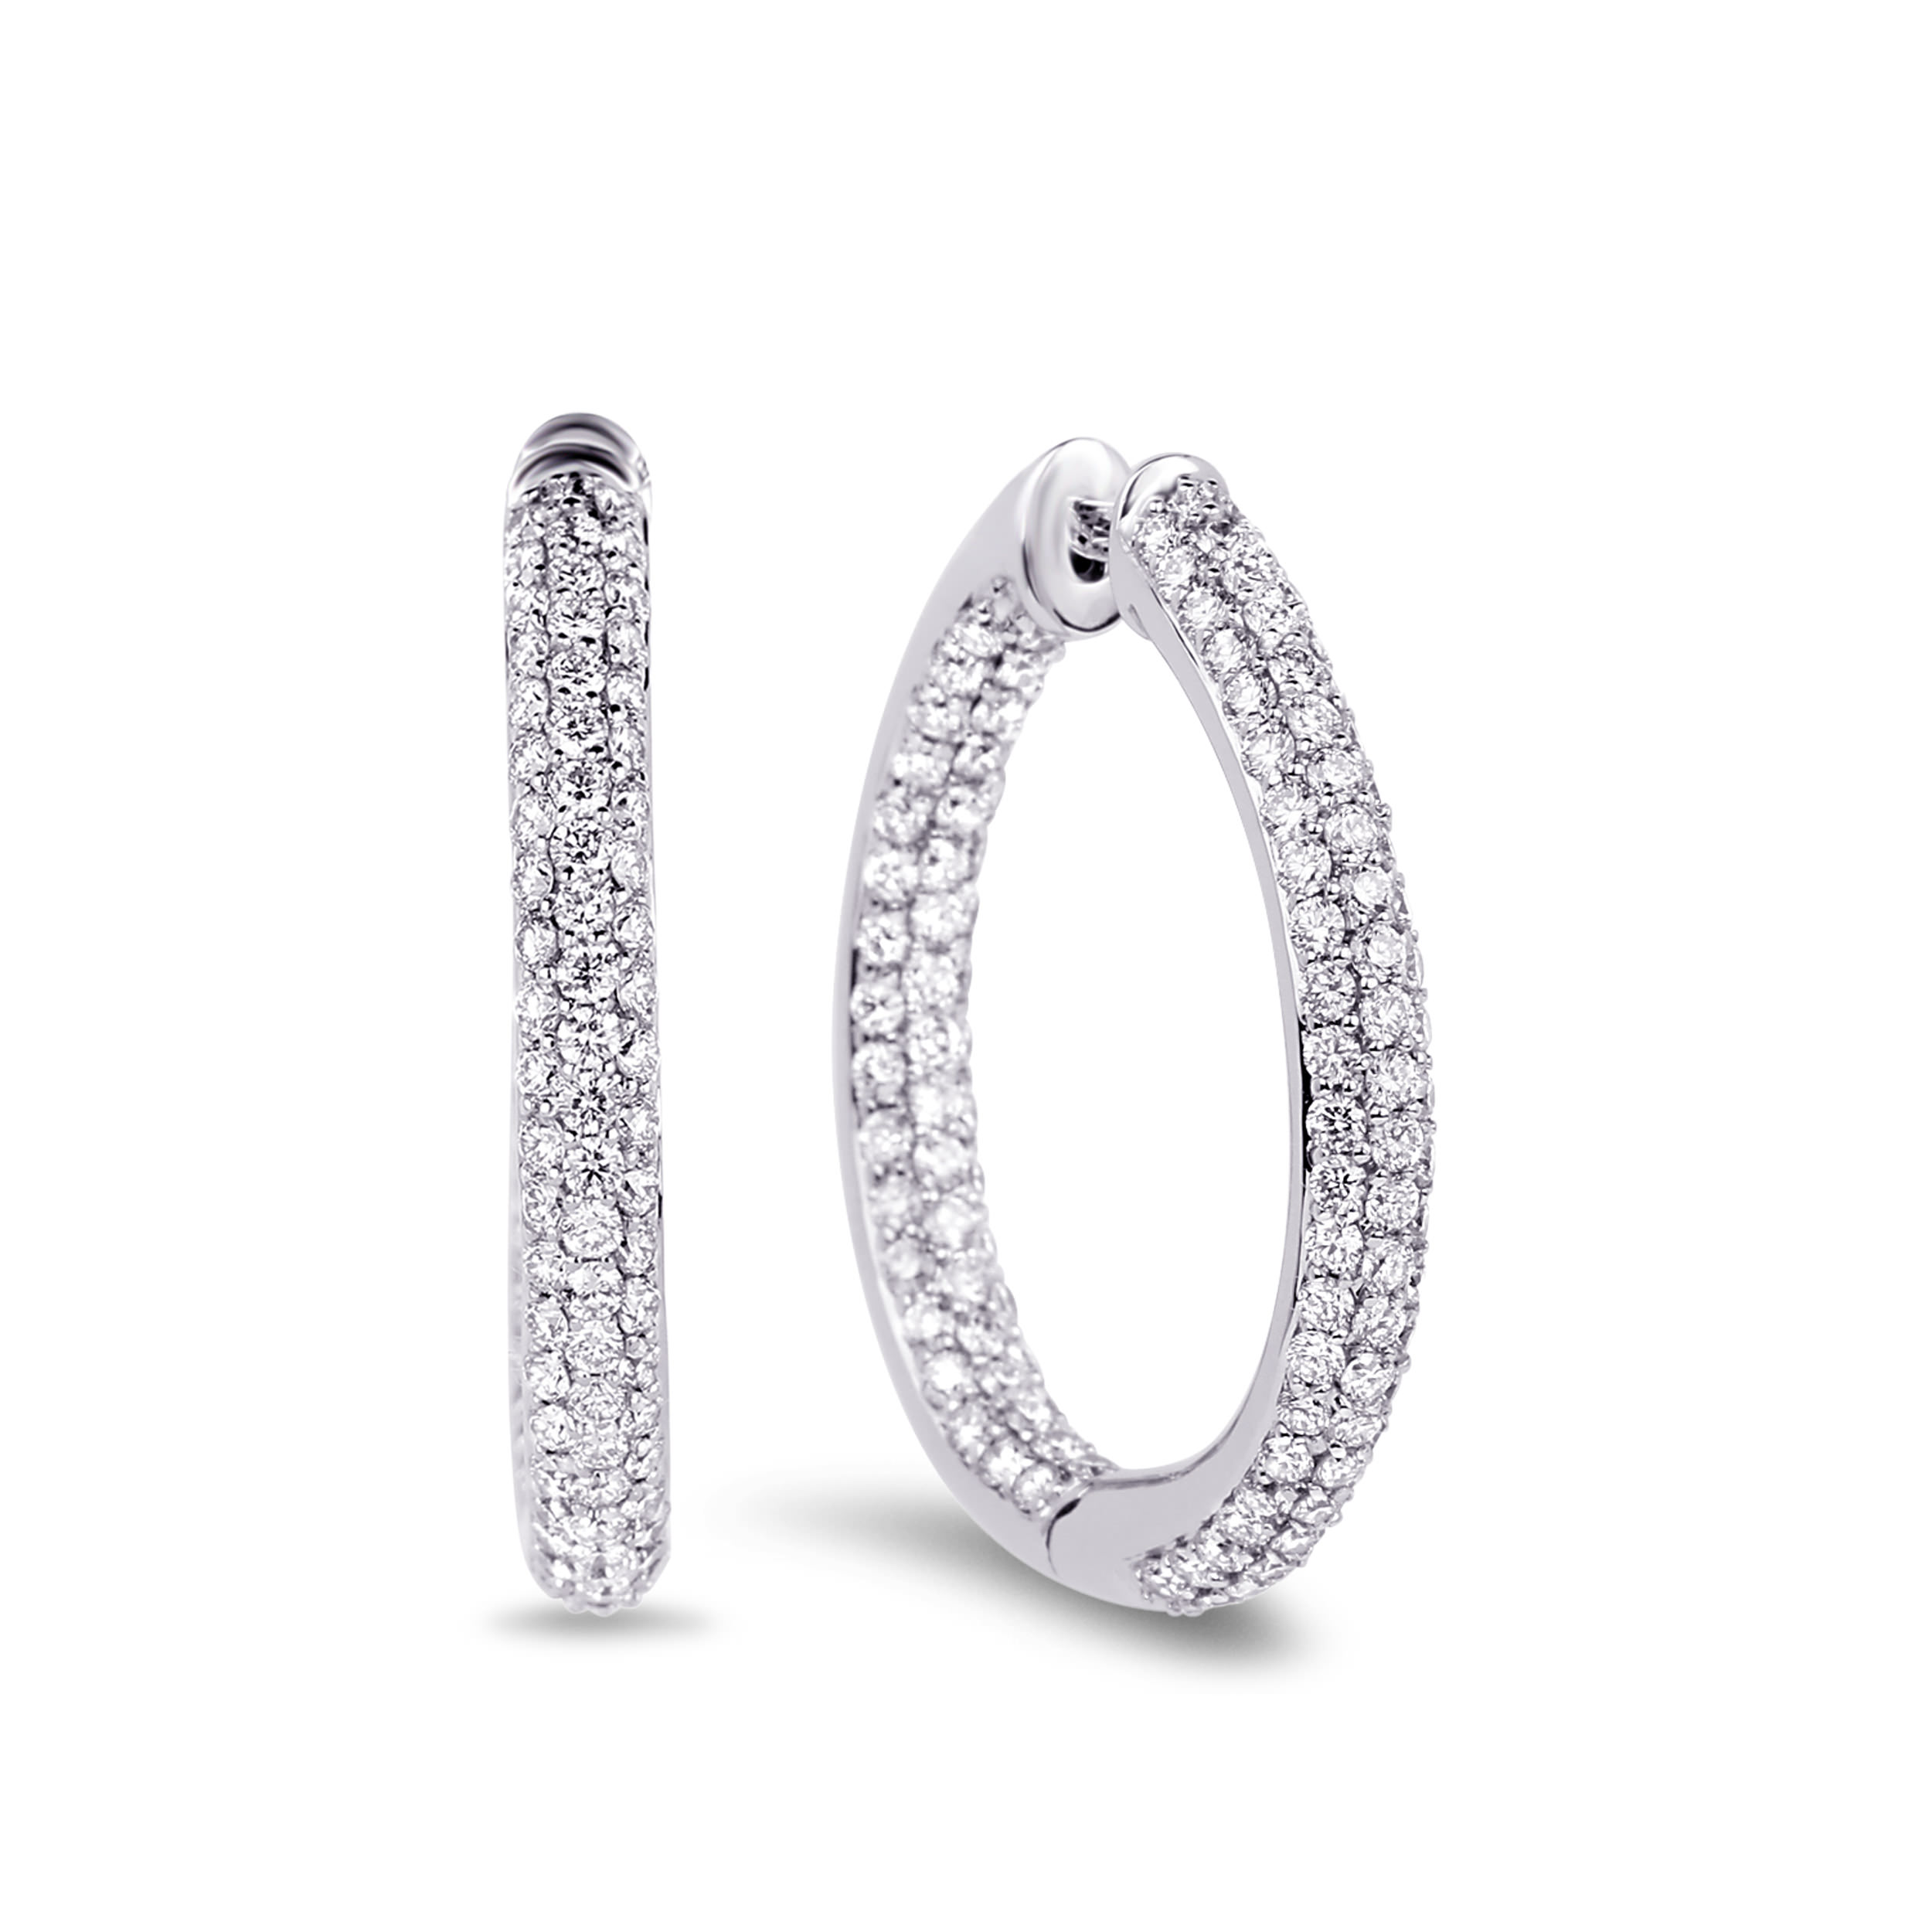 Diamond Hoop Earrings SGE110 (Earrings)